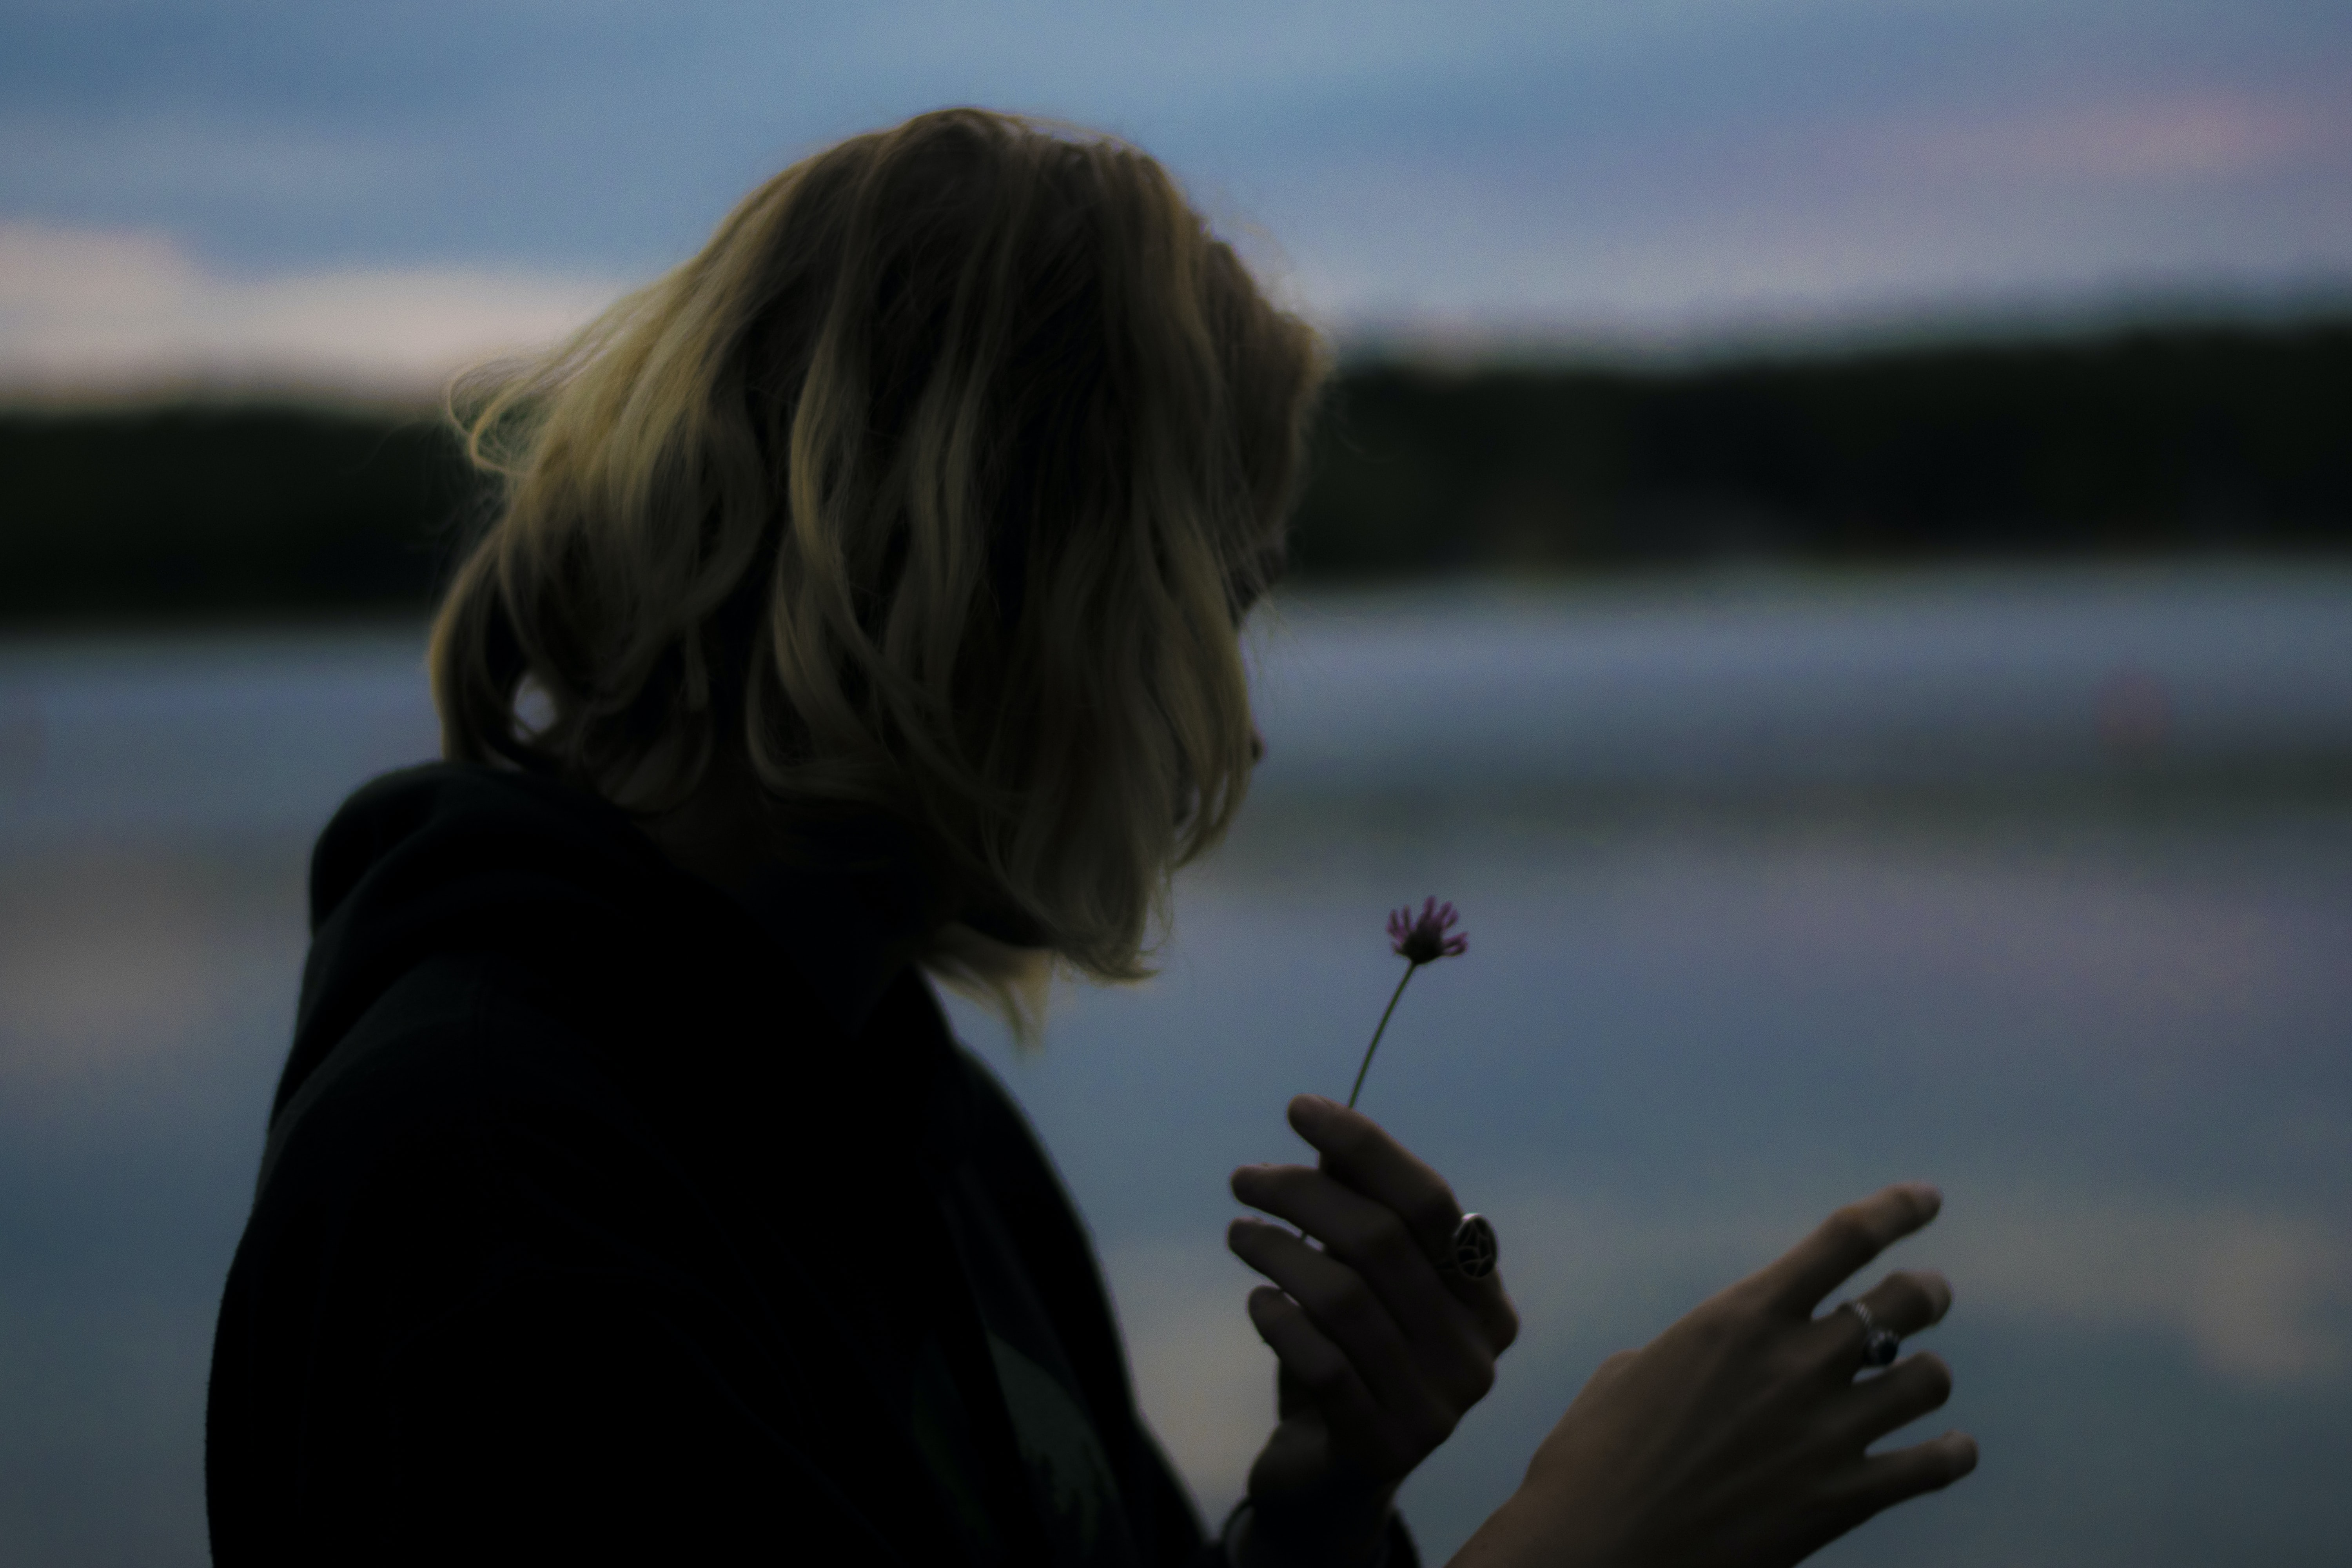 A dim shot of a woman looking at a small pink flower in her hand